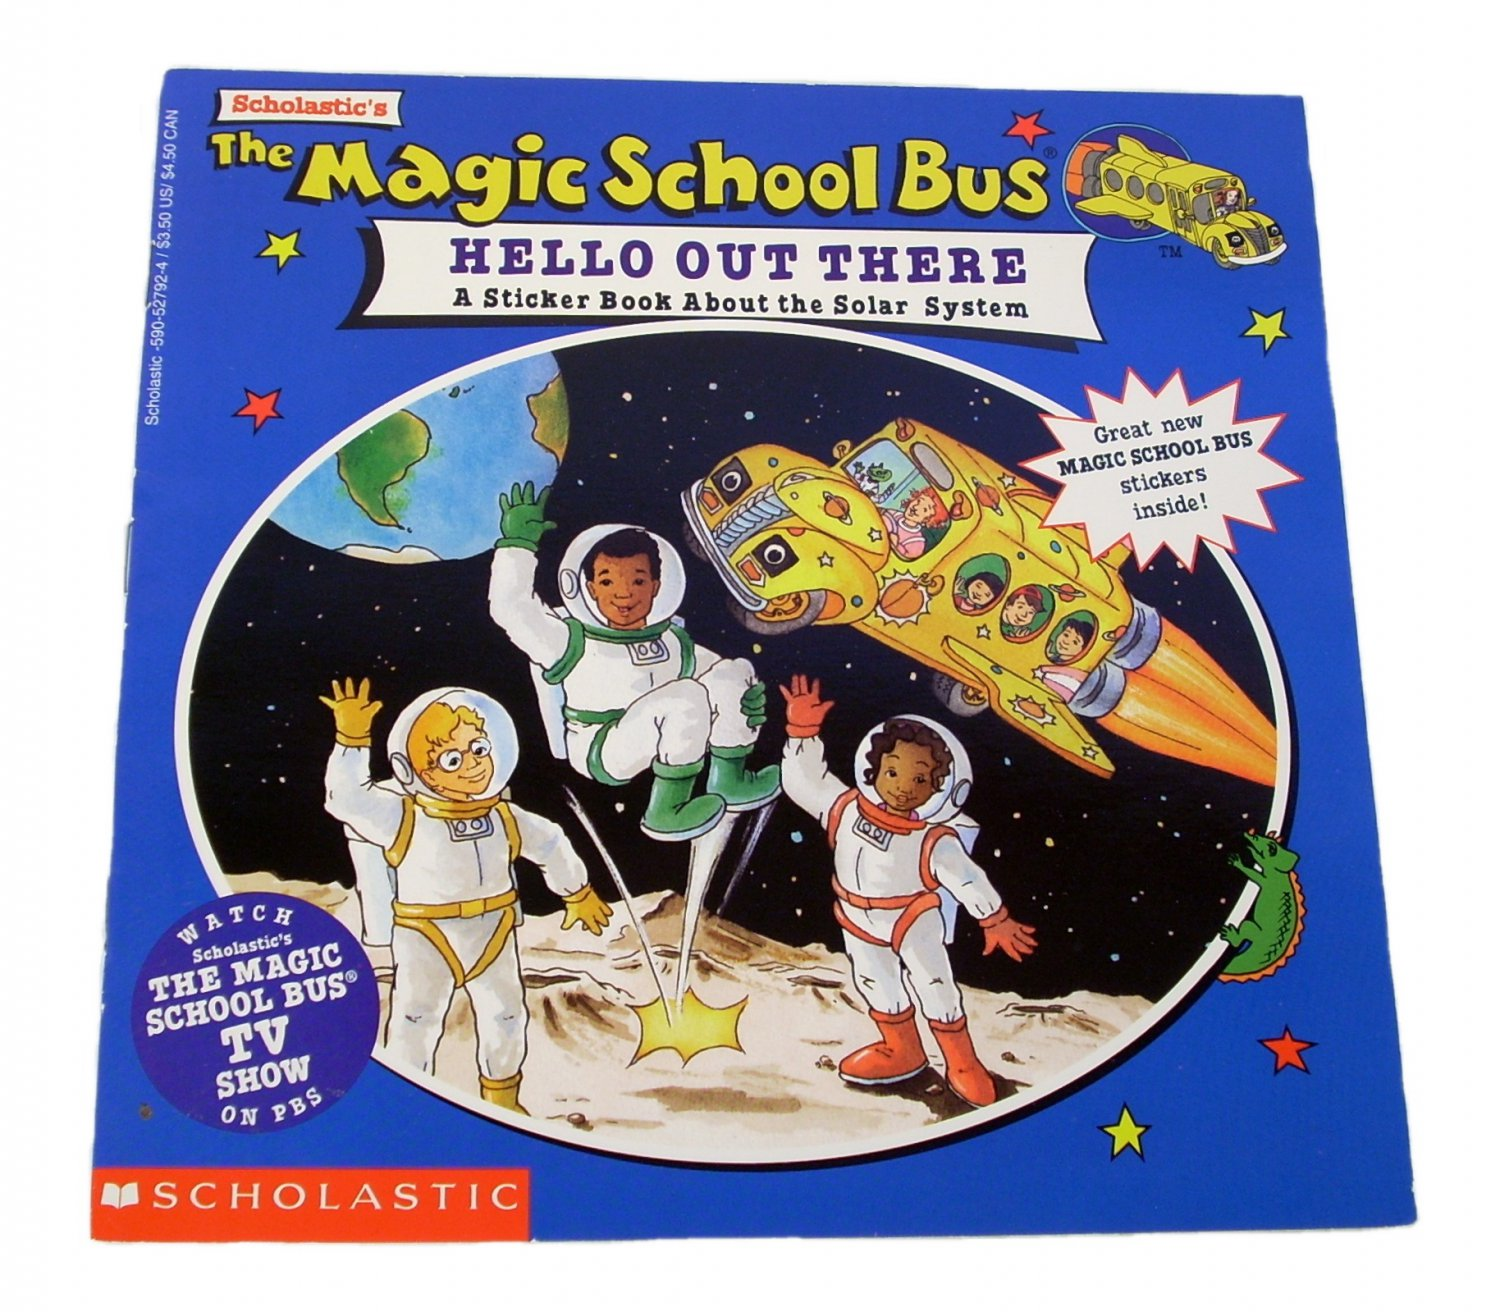 The Magic School Bus Hello Out There By Joanna Cole